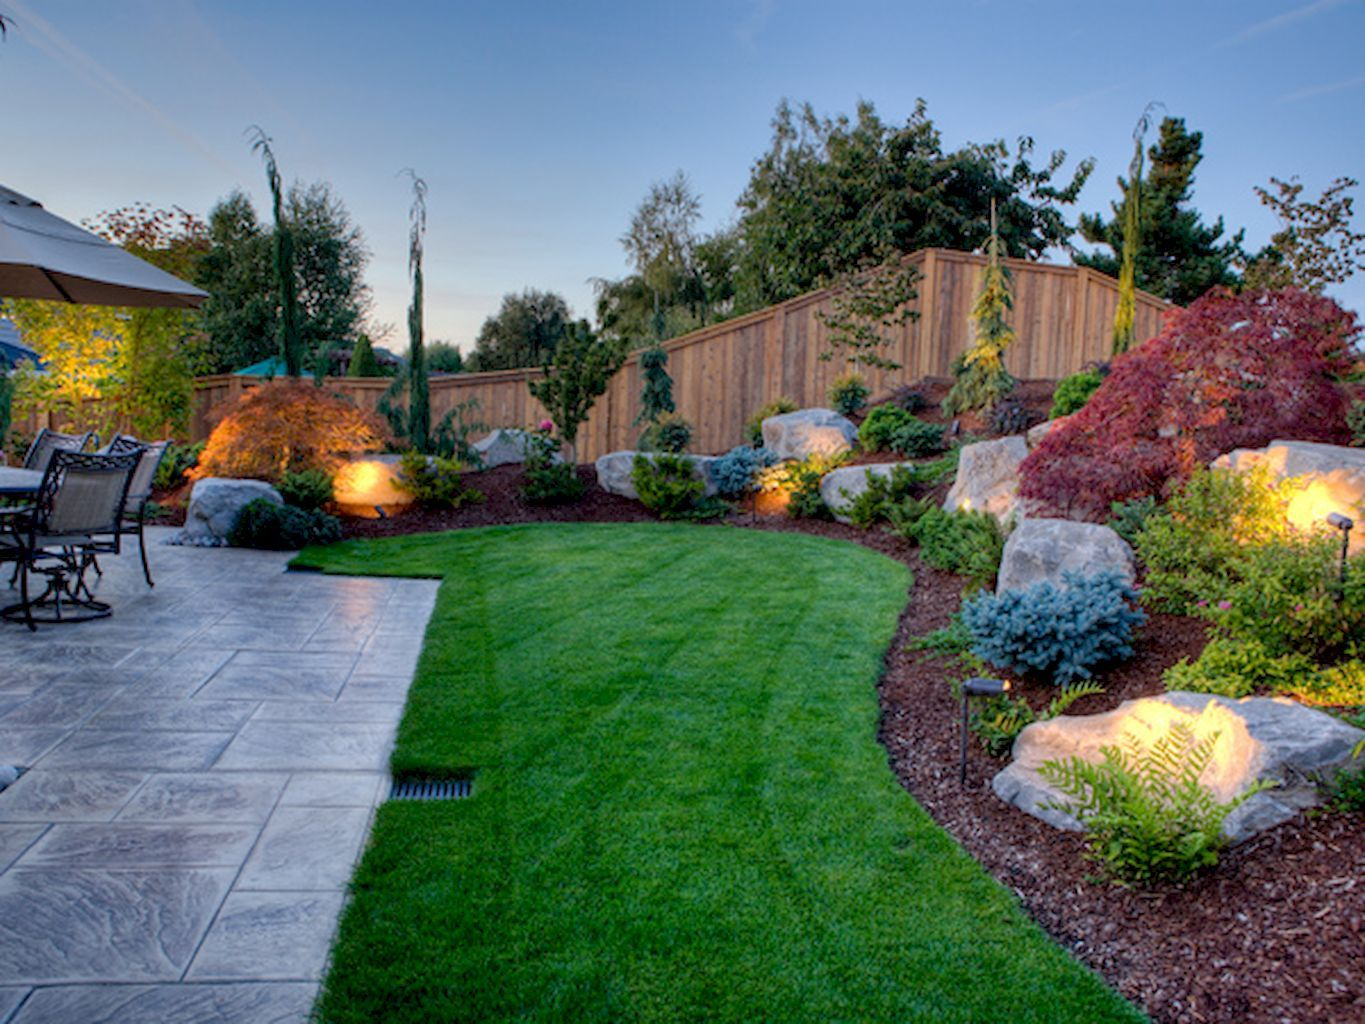 40 beautiful front yard landscaping ideas yard for Small front yard patio ideas